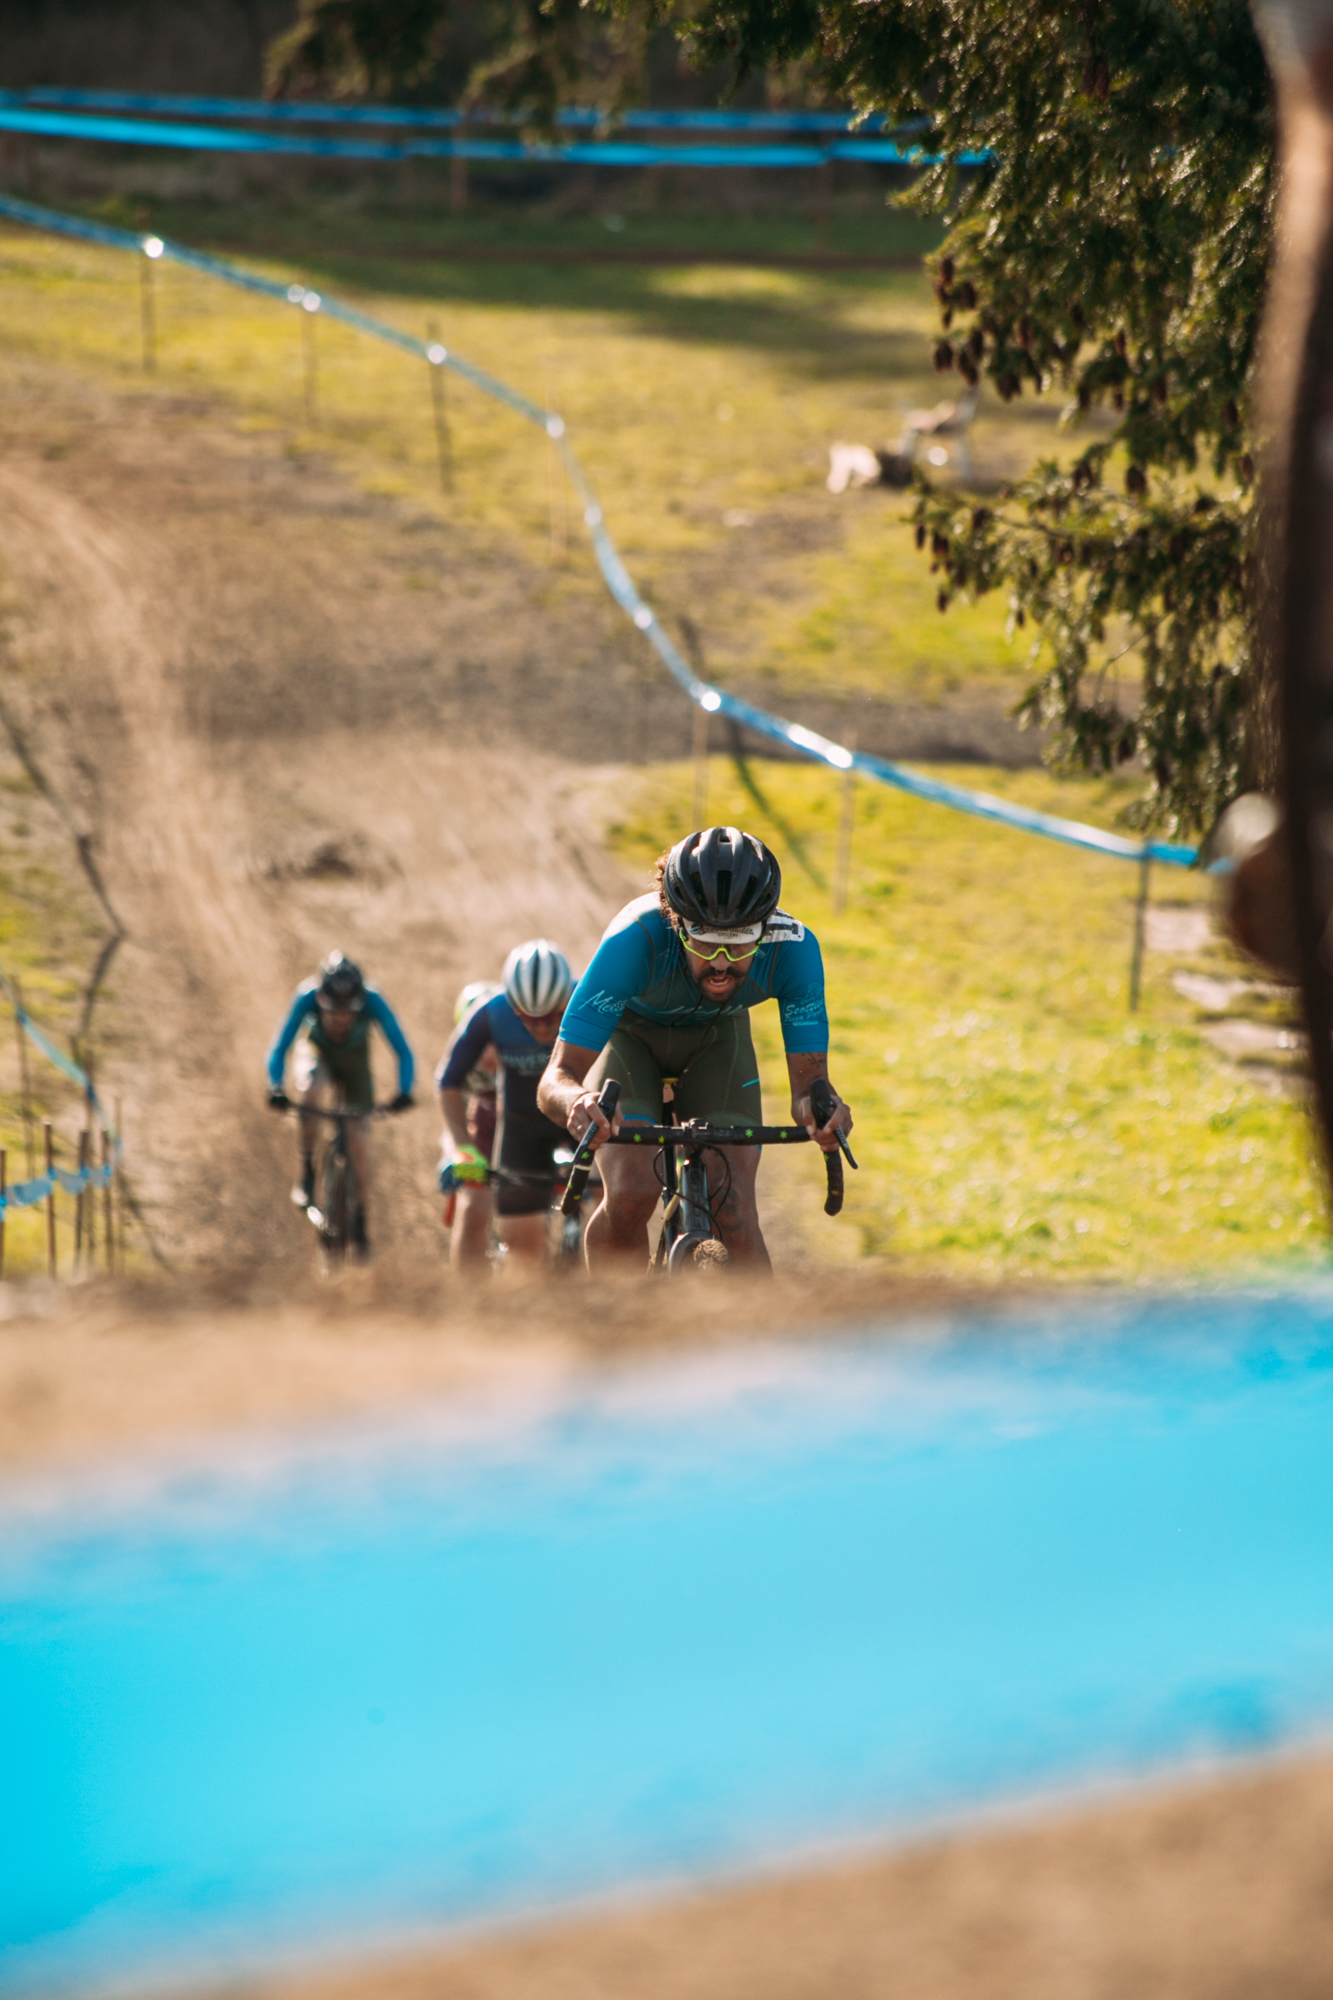 Cyclocross18_CCCX_RainierHS-223-mettlecycling.jpg